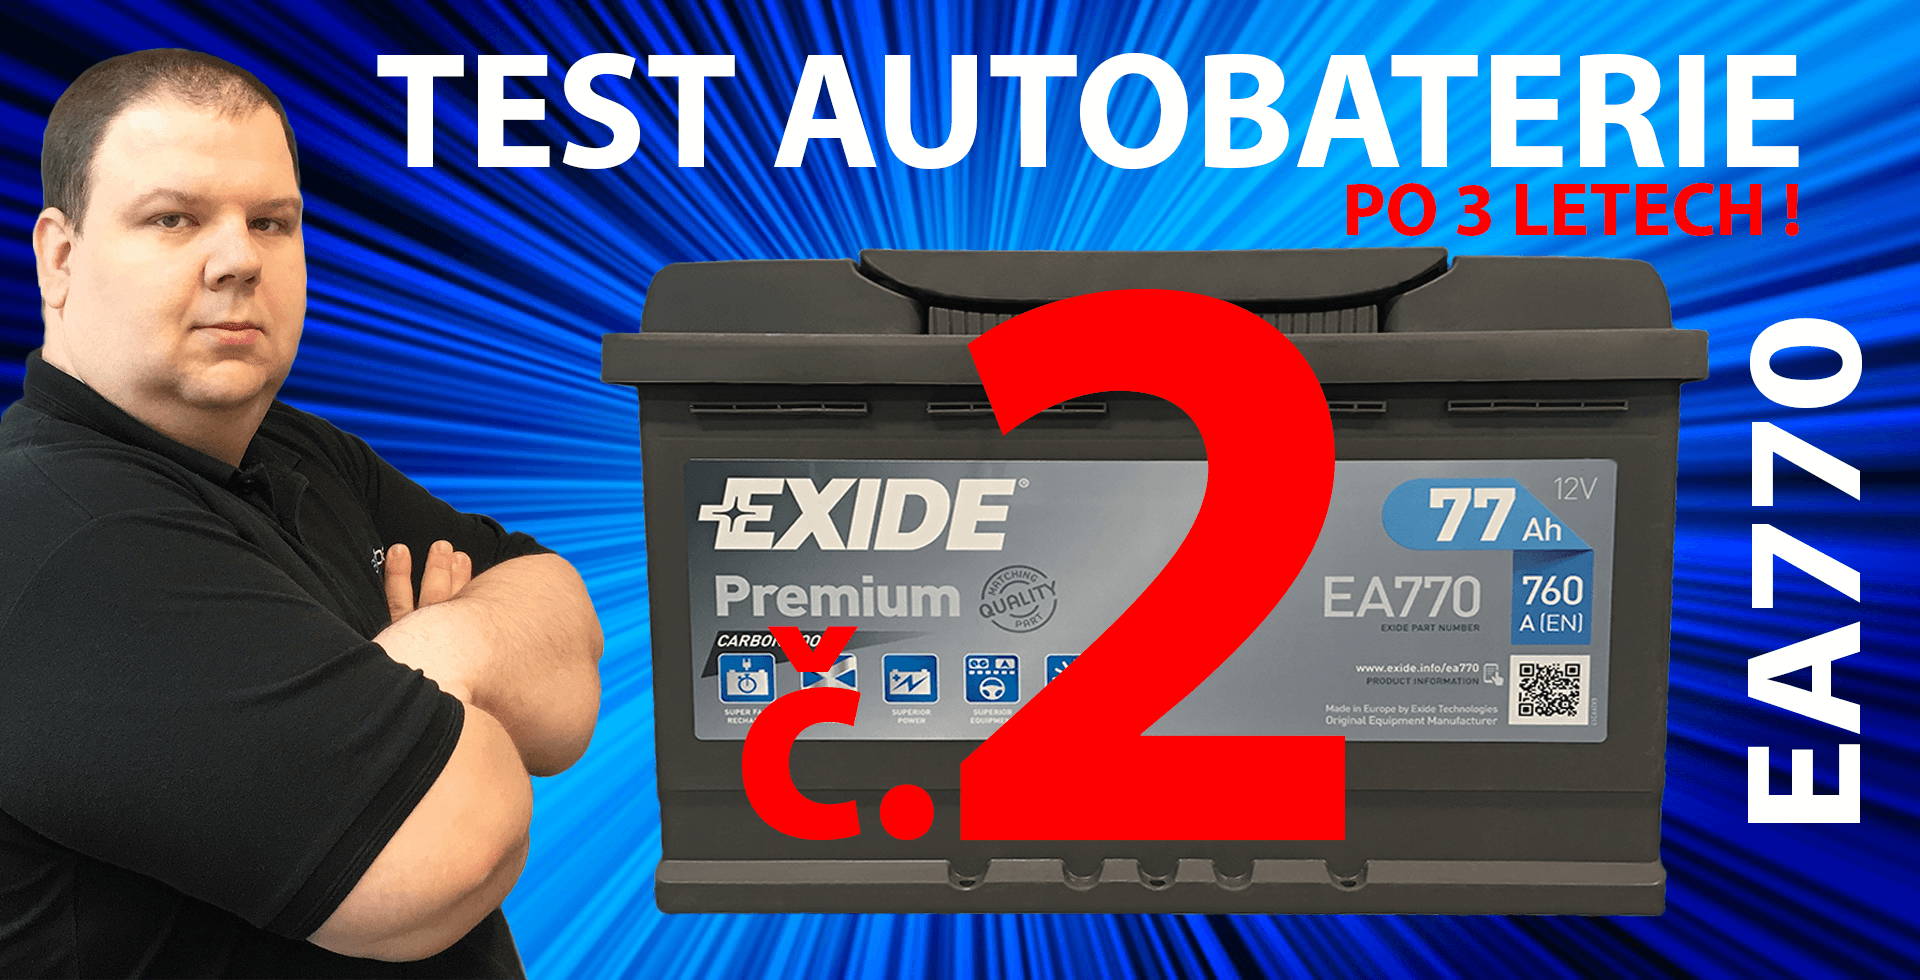 VIDEO - Test autobaterie EXIDE Premium EA770 #2